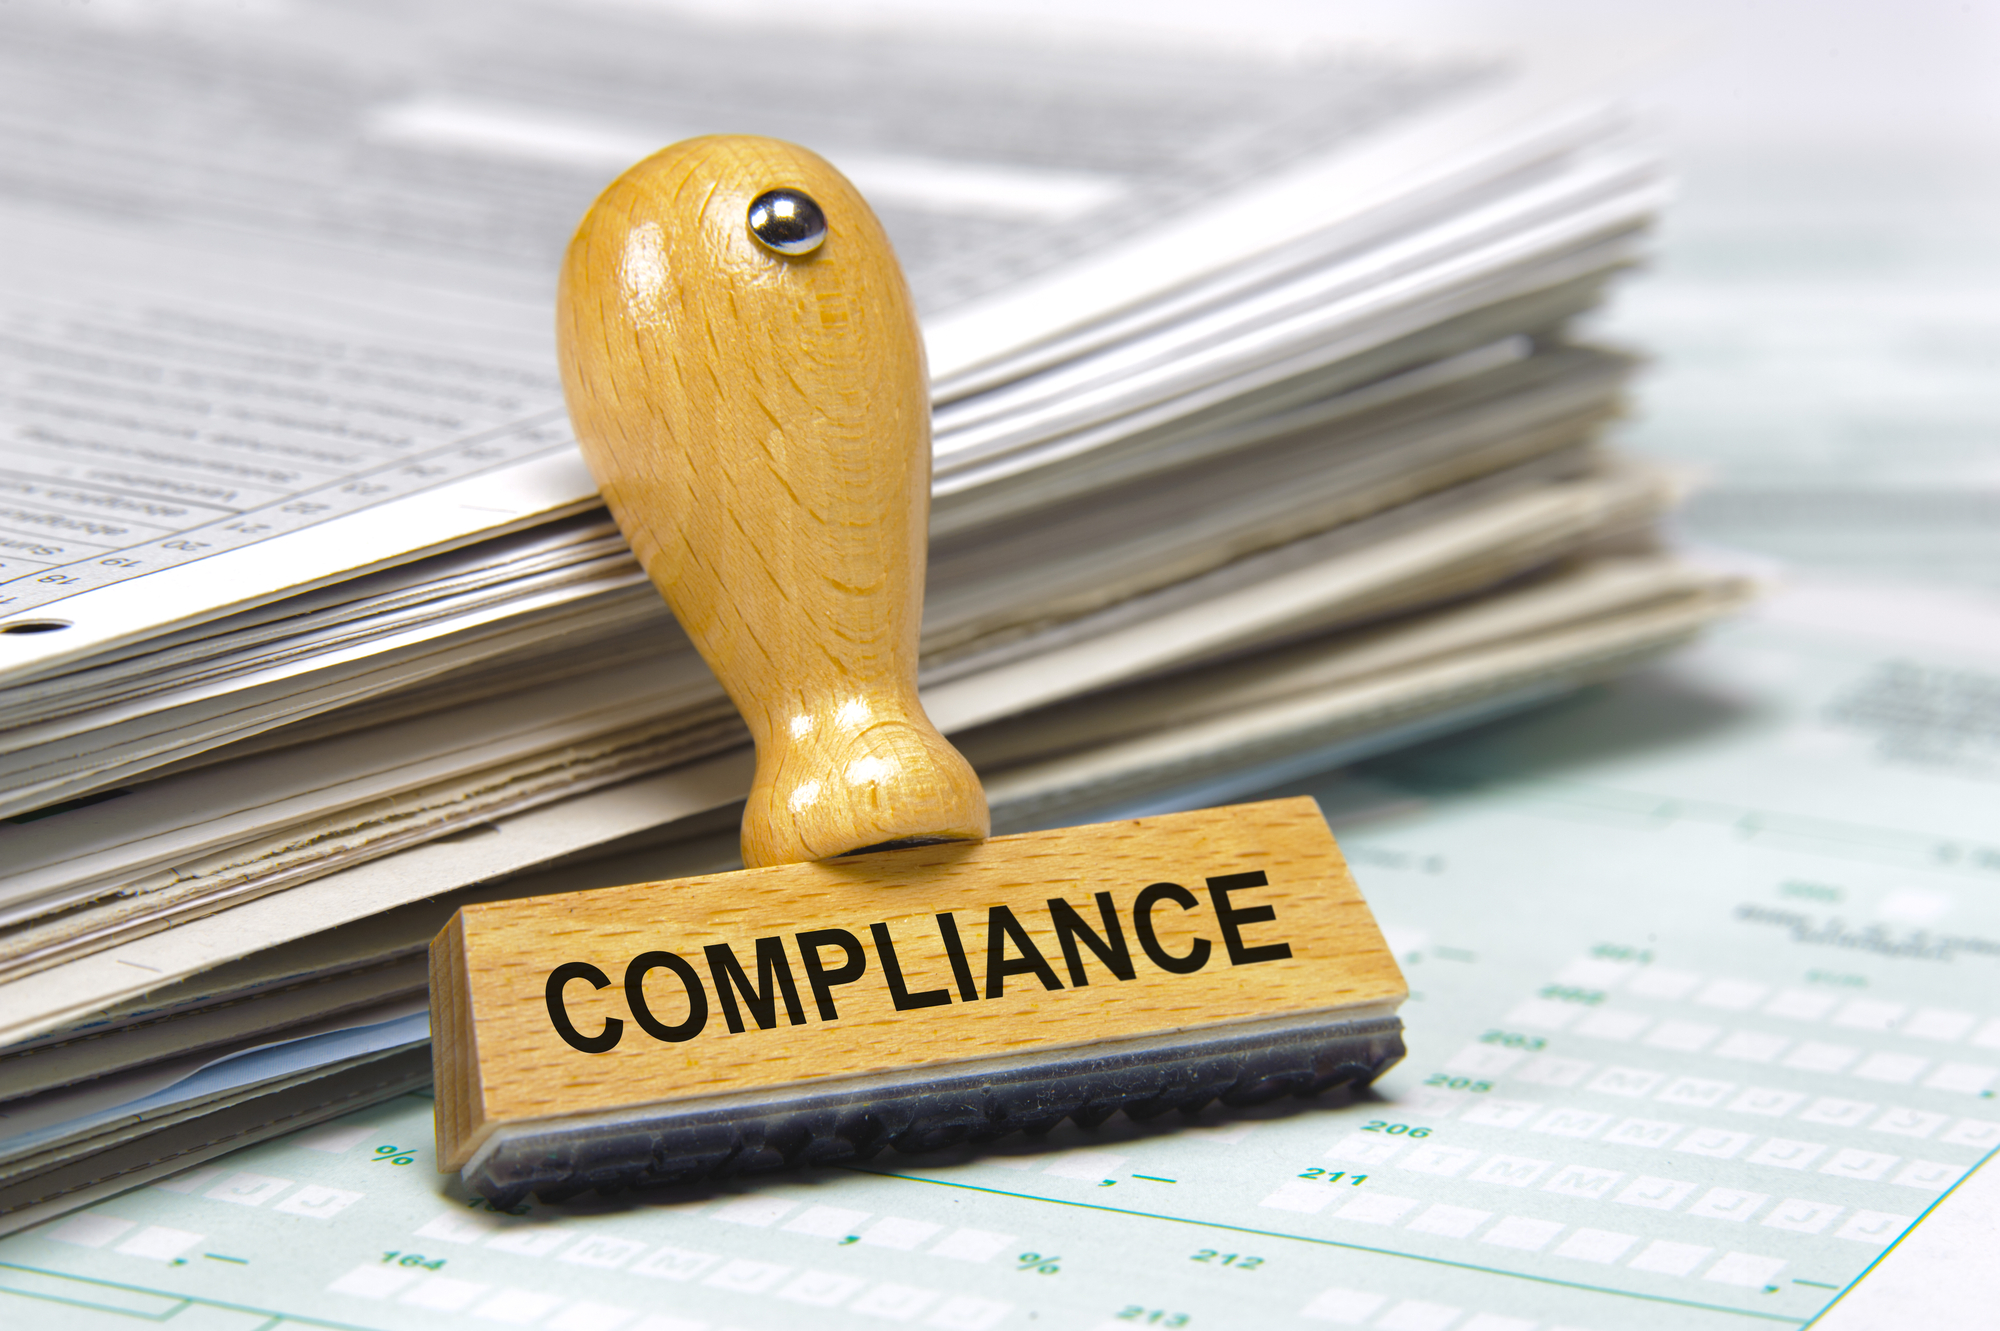 Compliance and regulation